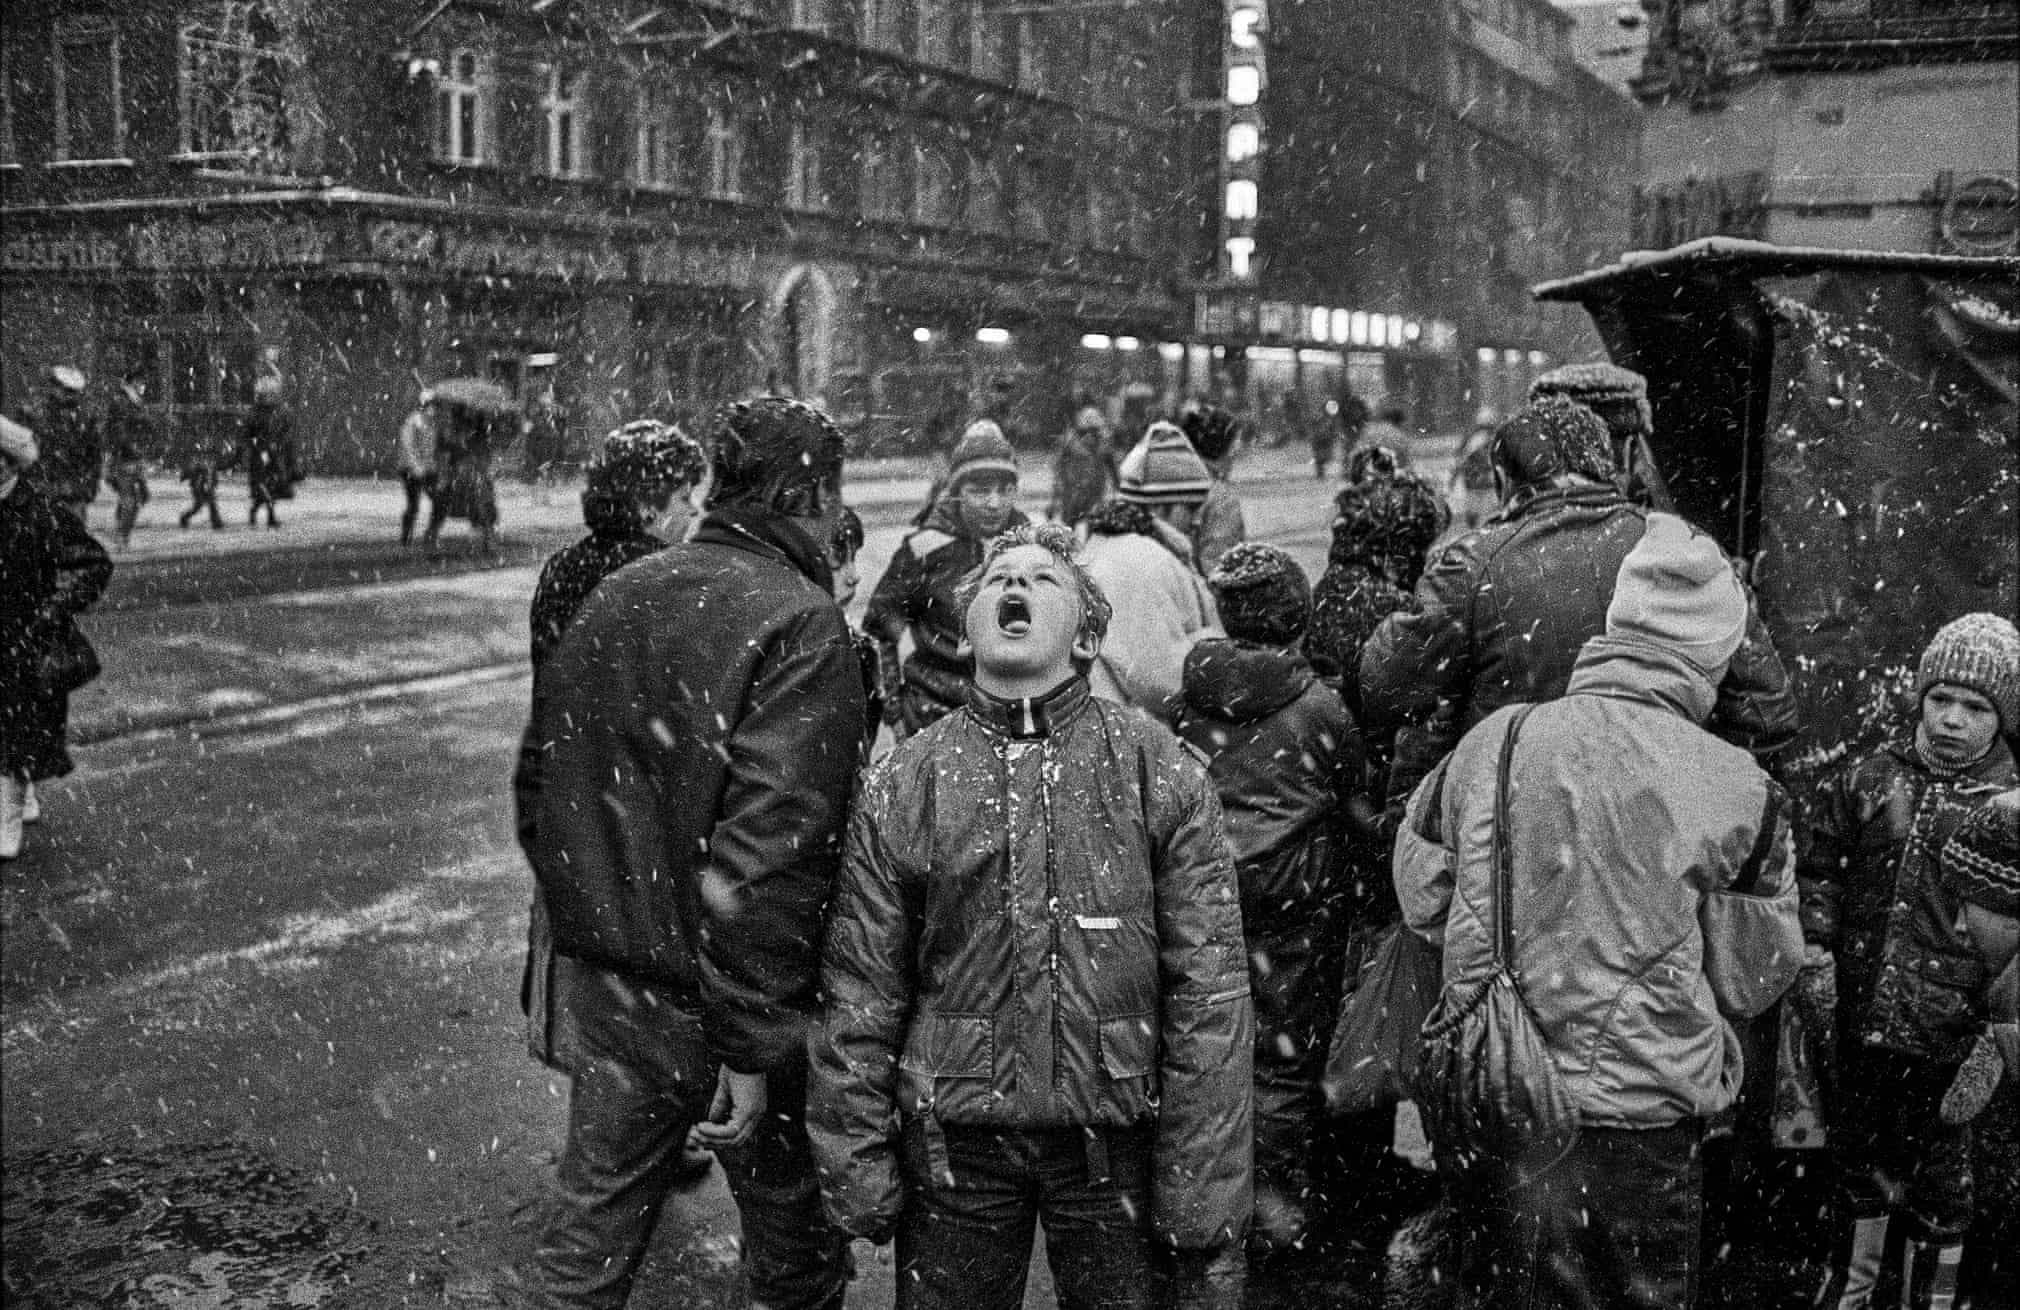 Snow eater in front of the railway station, Katowice, Poland, 1988